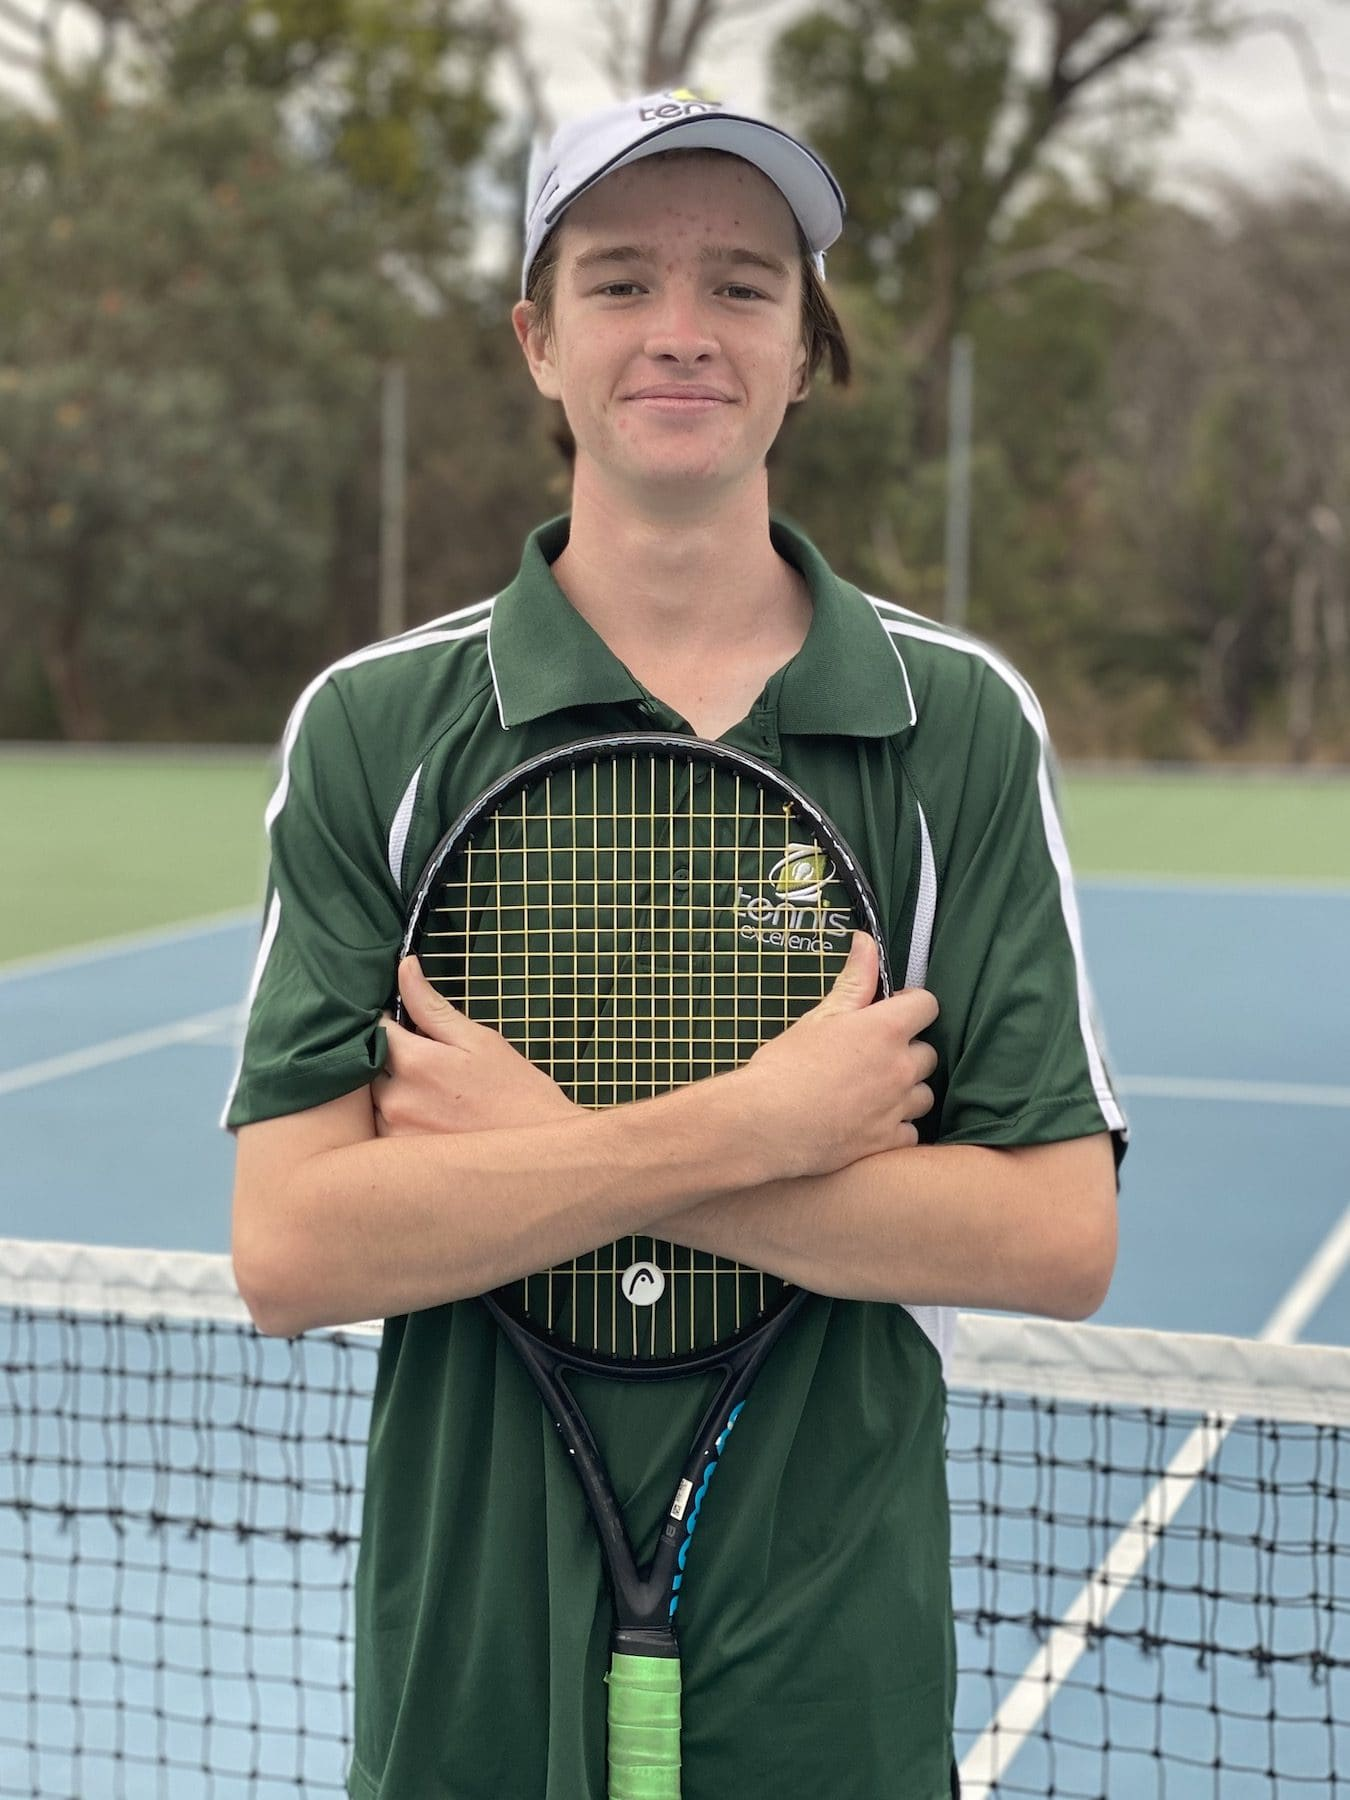 https://www.tennisexcellence.com.au/wp-content/uploads/2020/05/Coach_Cam-Webb-1-e1590386164197.jpeg